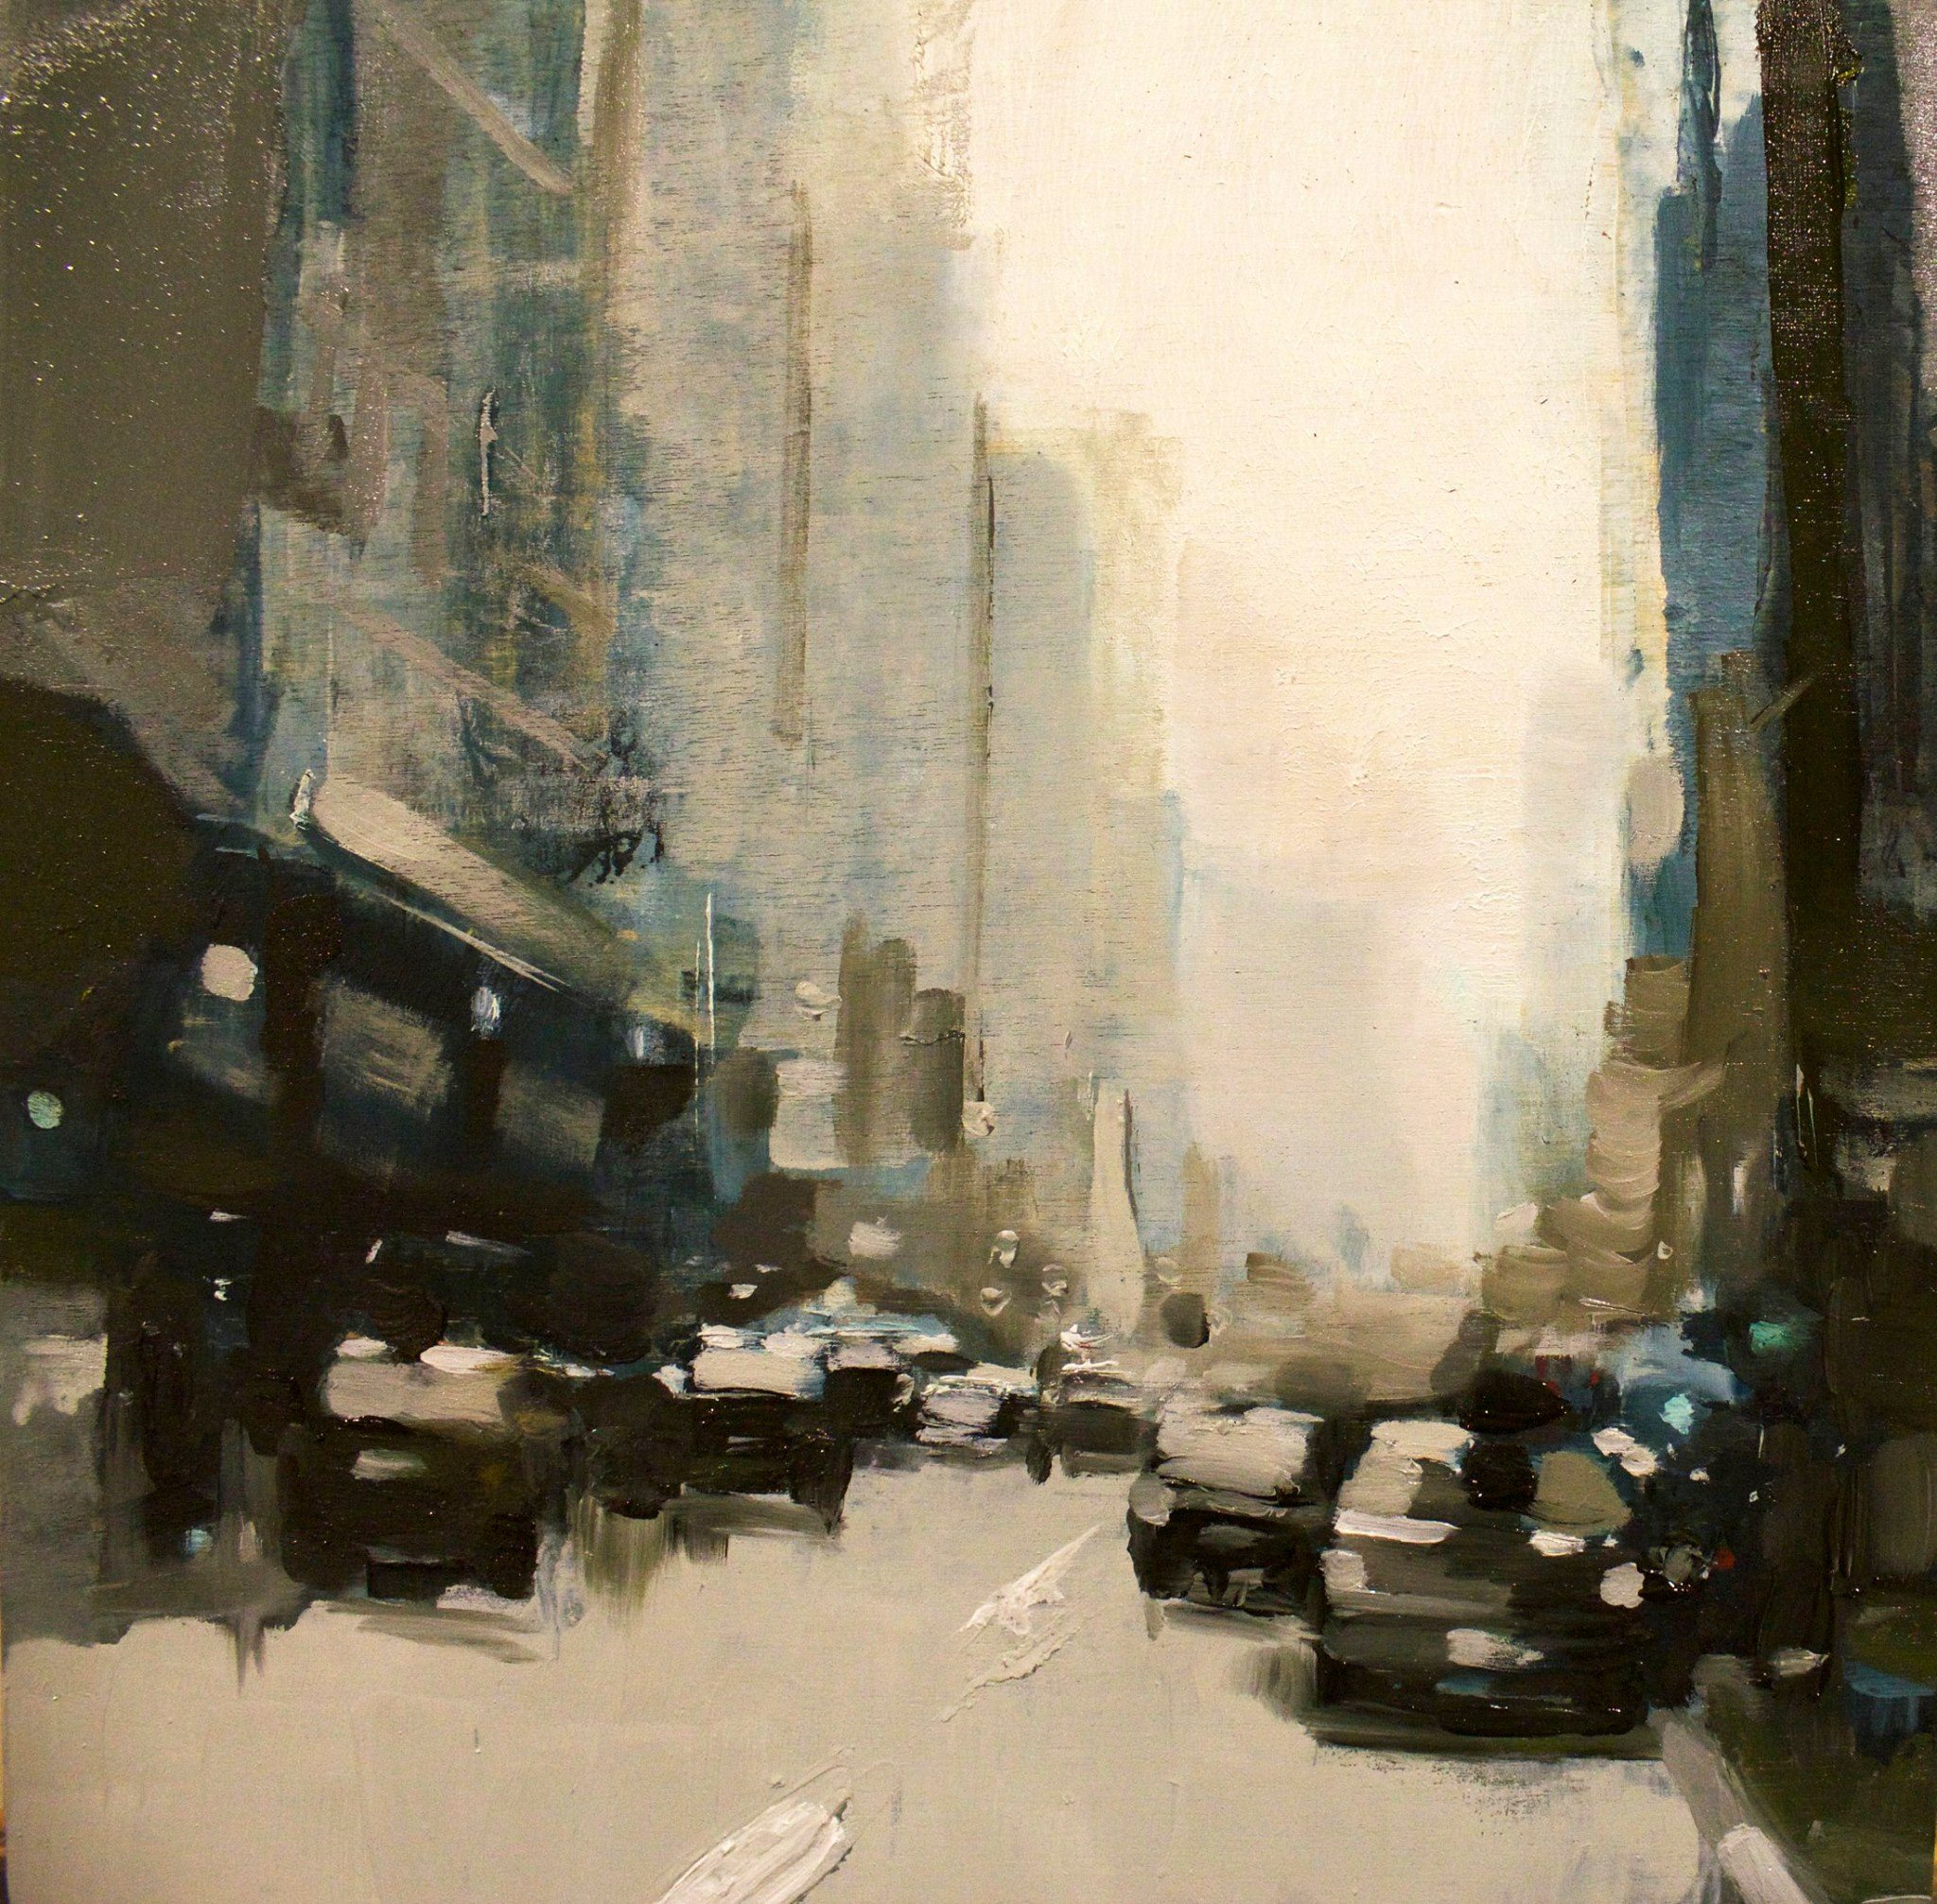 jose-alfonso-jd-alfonso-new-york-oil-painting-24.jpg